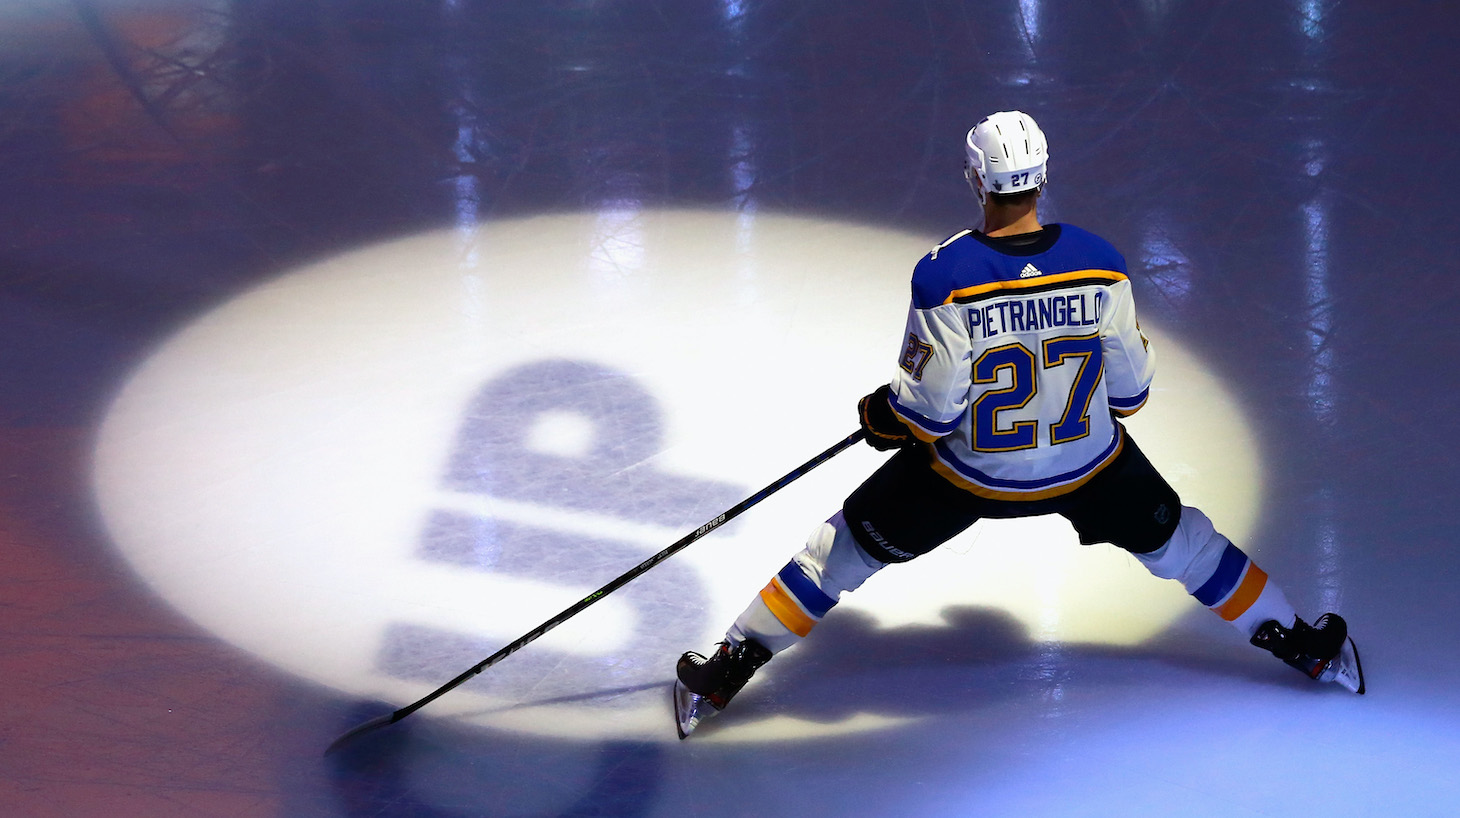 EDMONTON, ALBERTA - AUGUST 17: Alex Pietrangelo #27 of the St. Louis Blues skates prior to the game against the Vancouver Canucks in Game Four of the Western Conference First Round during the 2020 NHL Stanley Cup Playoffs at Rogers Place on August 17, 2020 in Edmonton, Alberta, Canada. (Photo by Jeff Vinnick/Getty Images)